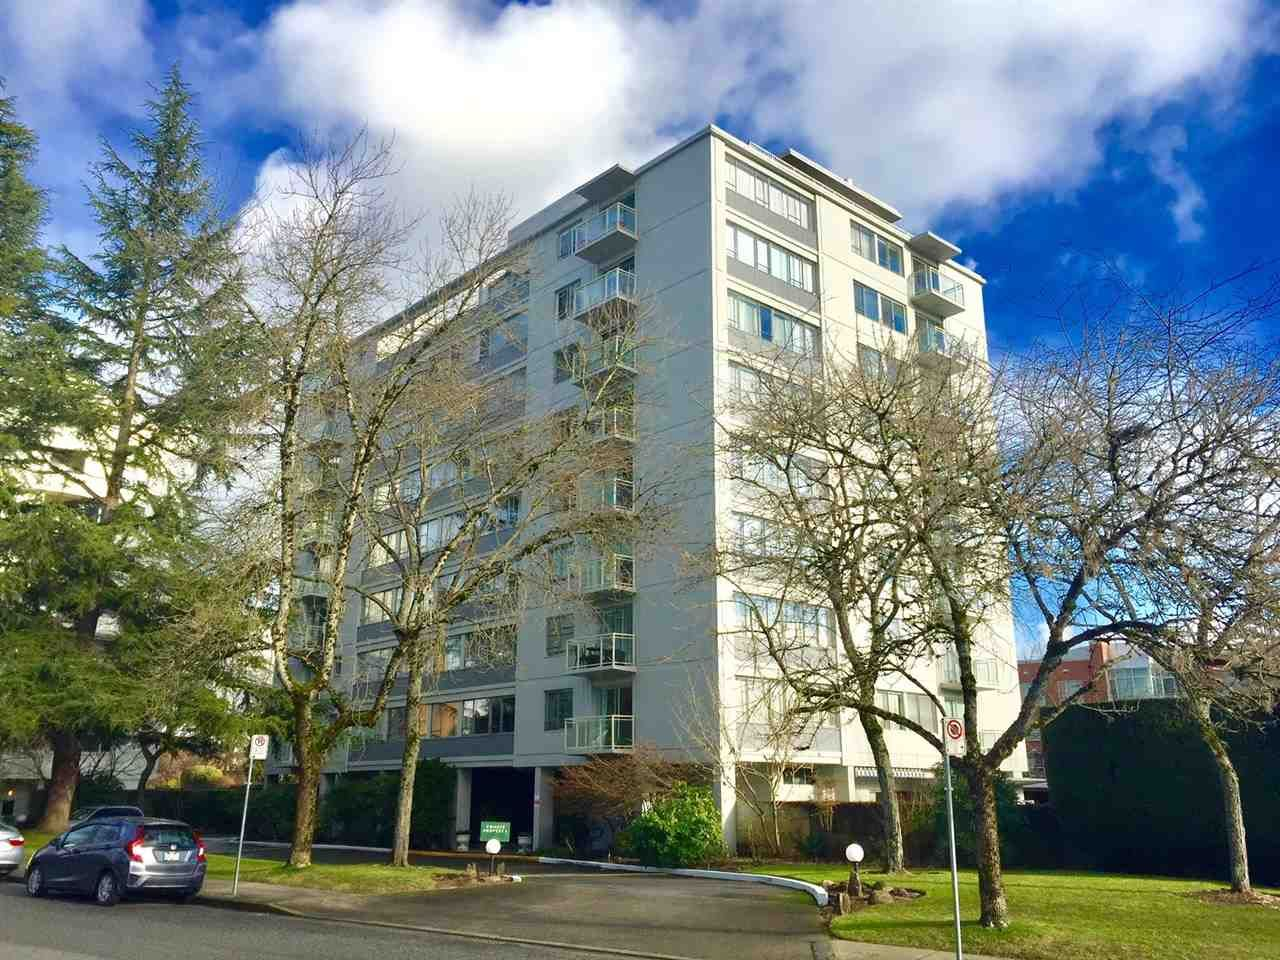 """Main Photo: 104 6076 TISDALL Street in Vancouver: Oakridge VW Condo for sale in """"THE MANSION HOUSES ESTATES LTD"""" (Vancouver West)  : MLS®# R2230391"""